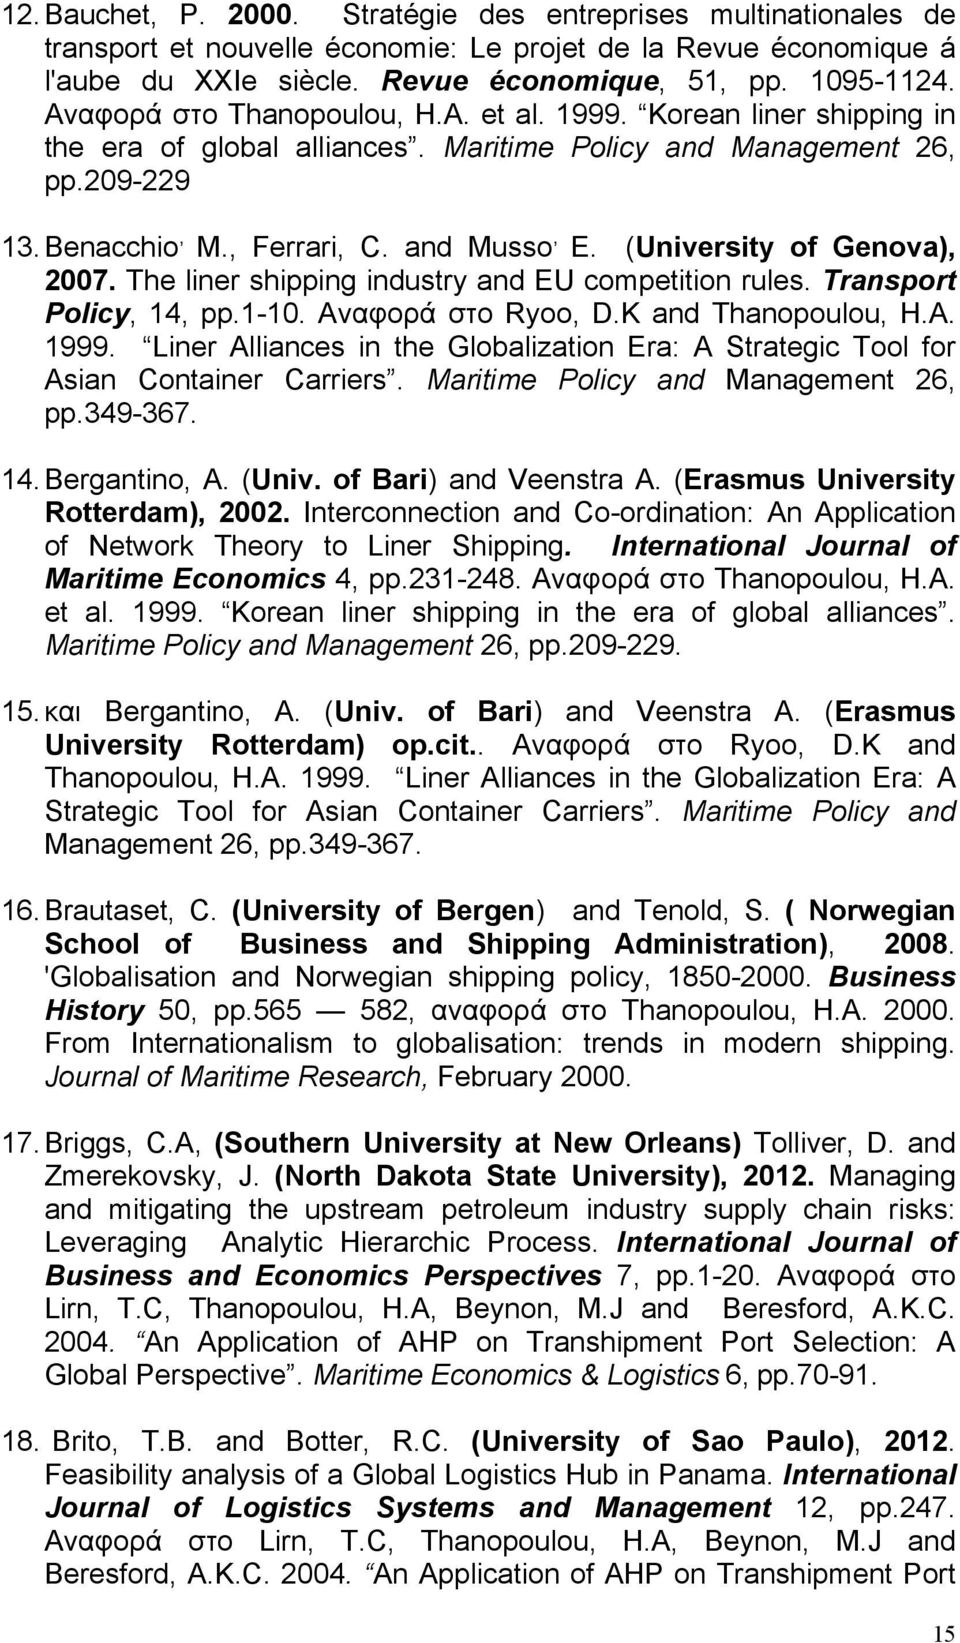 (University of Genova), 2007. The liner shipping industry and EU competition rules. Transport Policy, 14, pp.1-10. Αναφορά στο Ryoo, D.K and Thanopoulou, H.A. 1999.